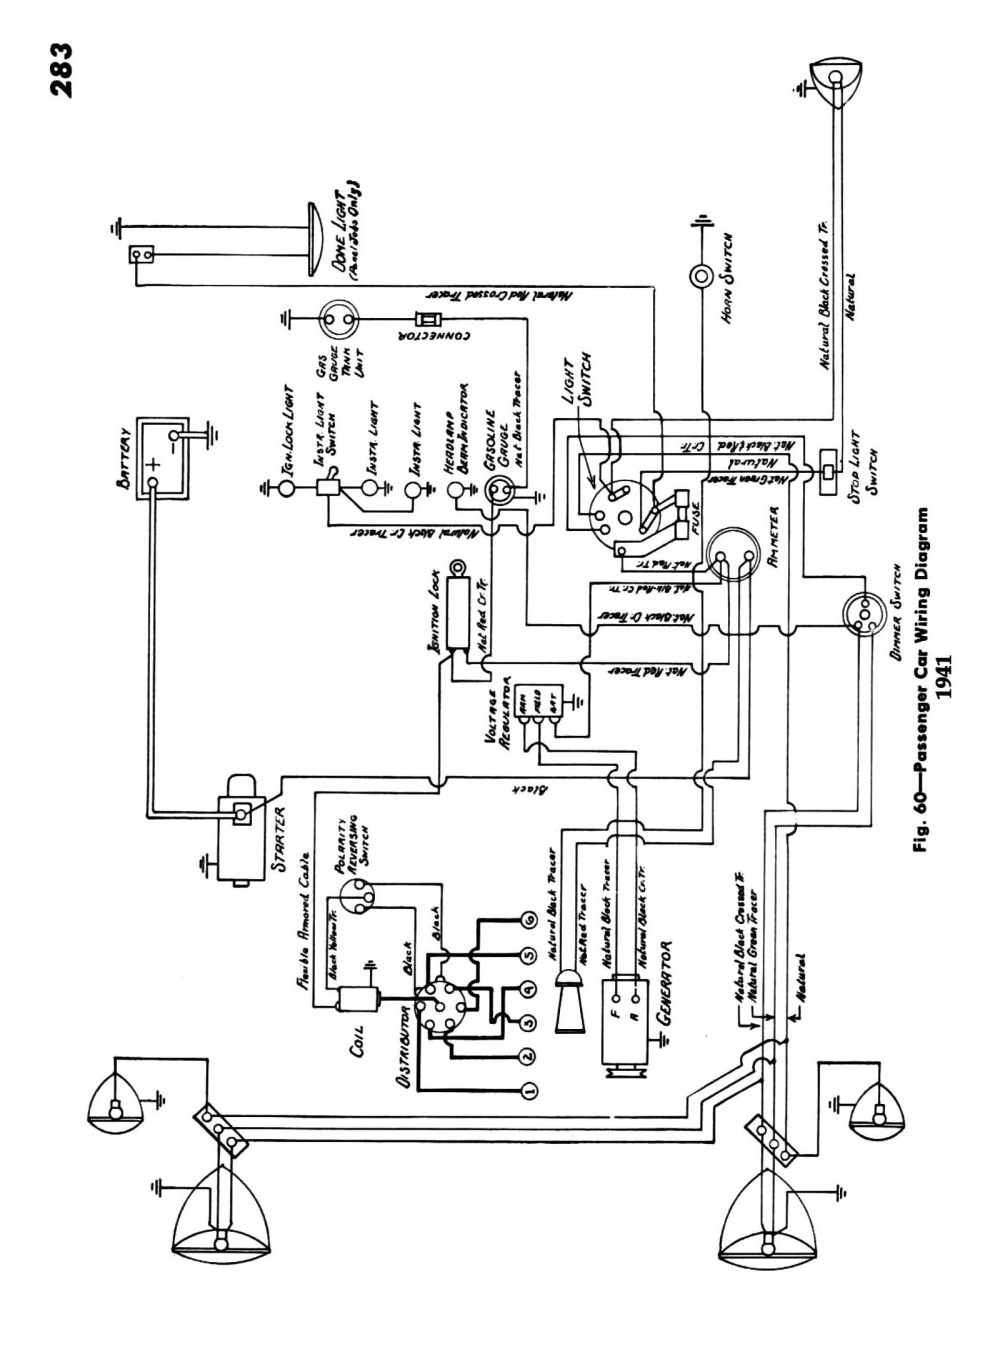 medium resolution of chevy wiring diagrams 1958 gmc truck wiring diagram 1941 passenger car wiring